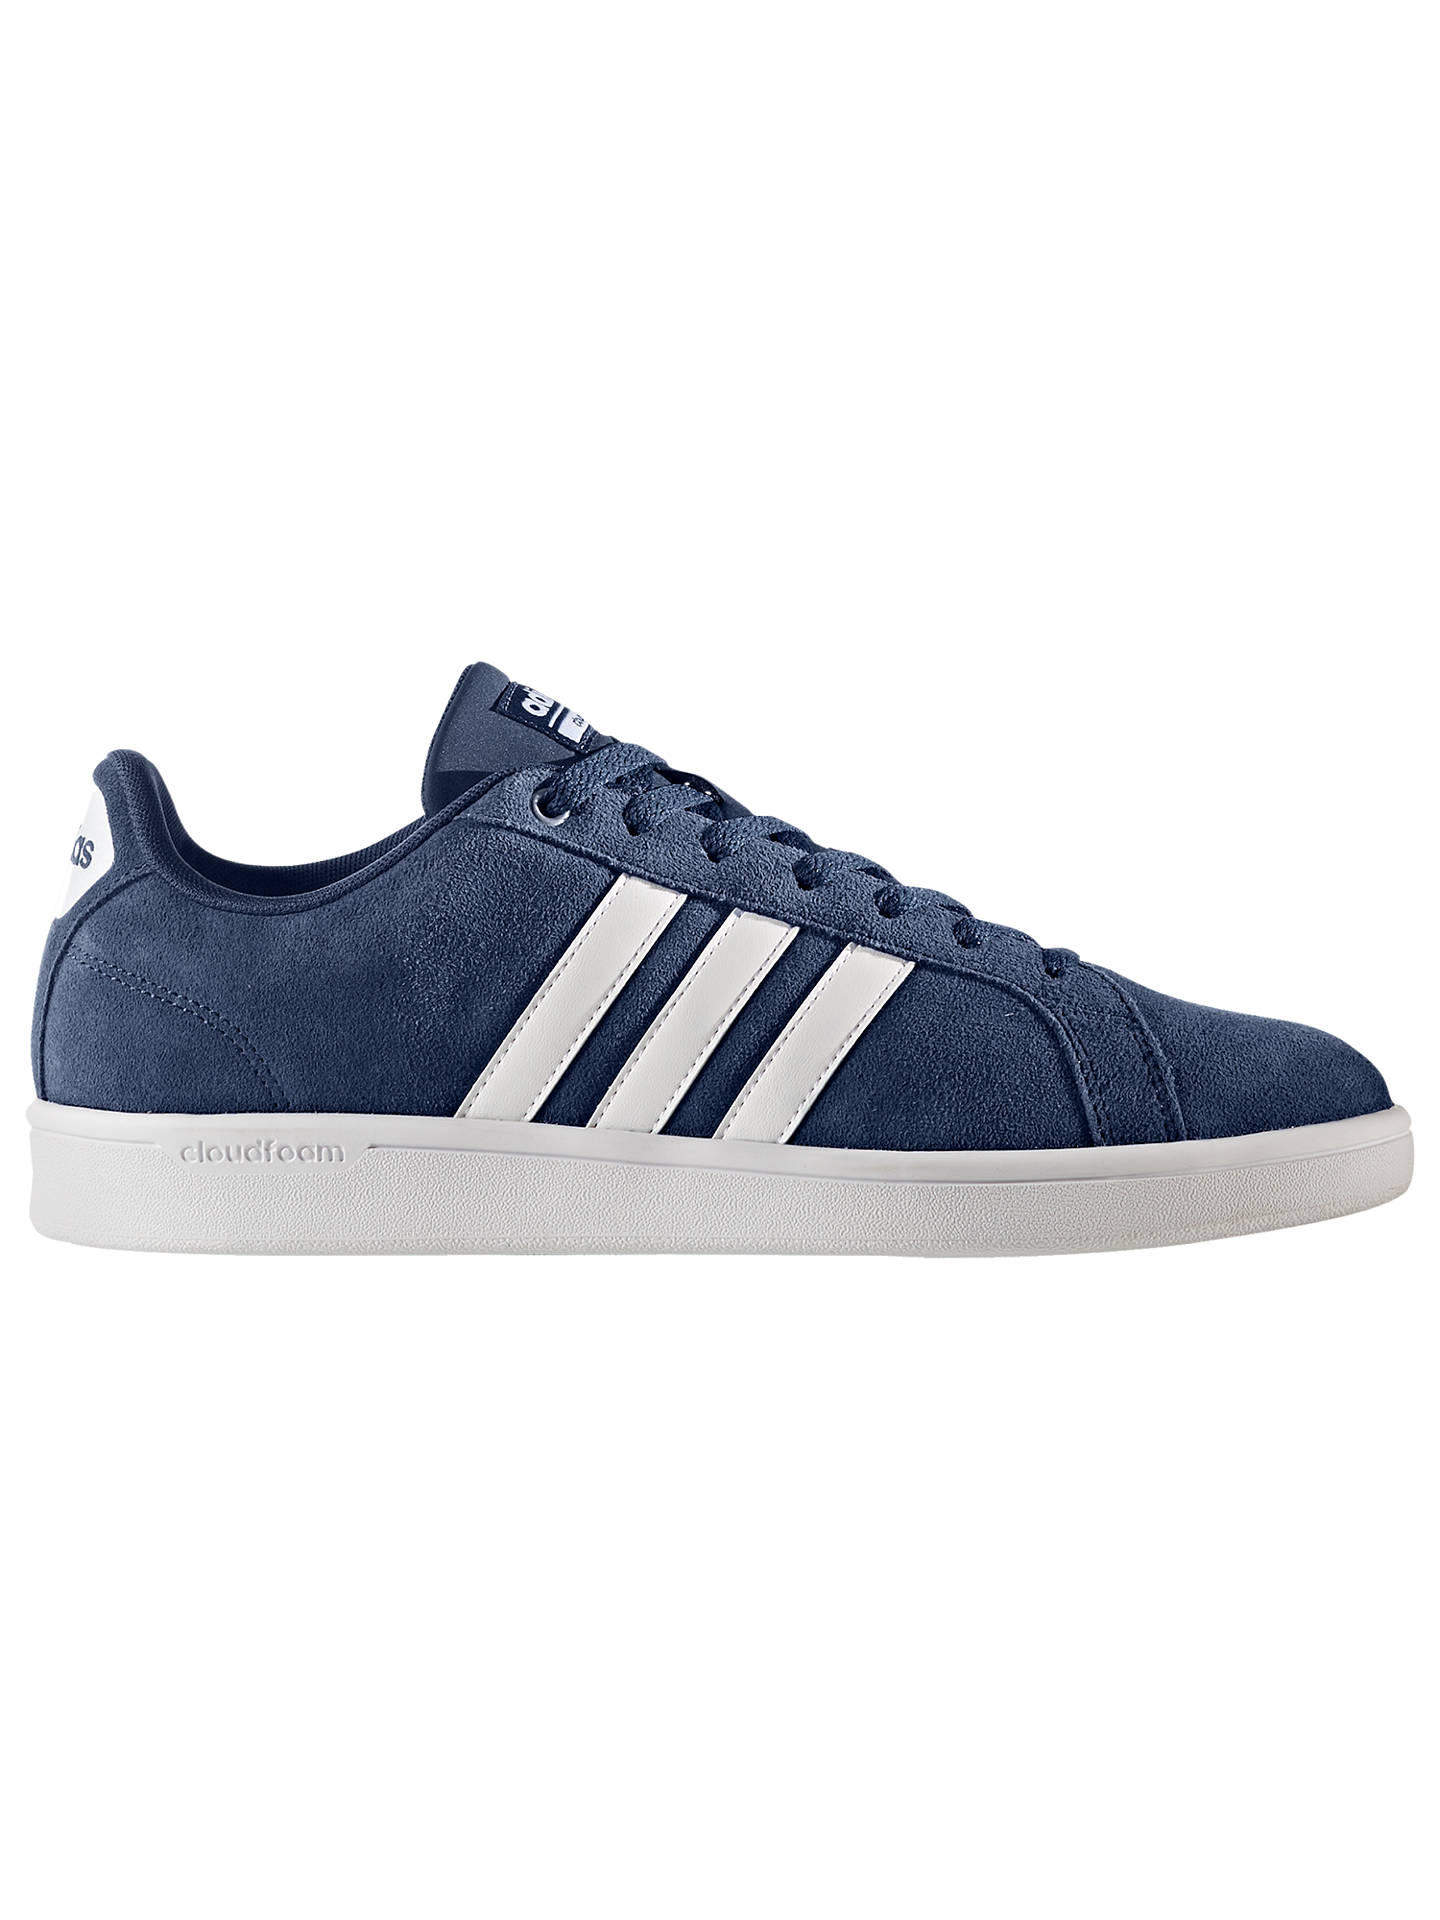 adidas neo cloudfoam footbed price a7f159